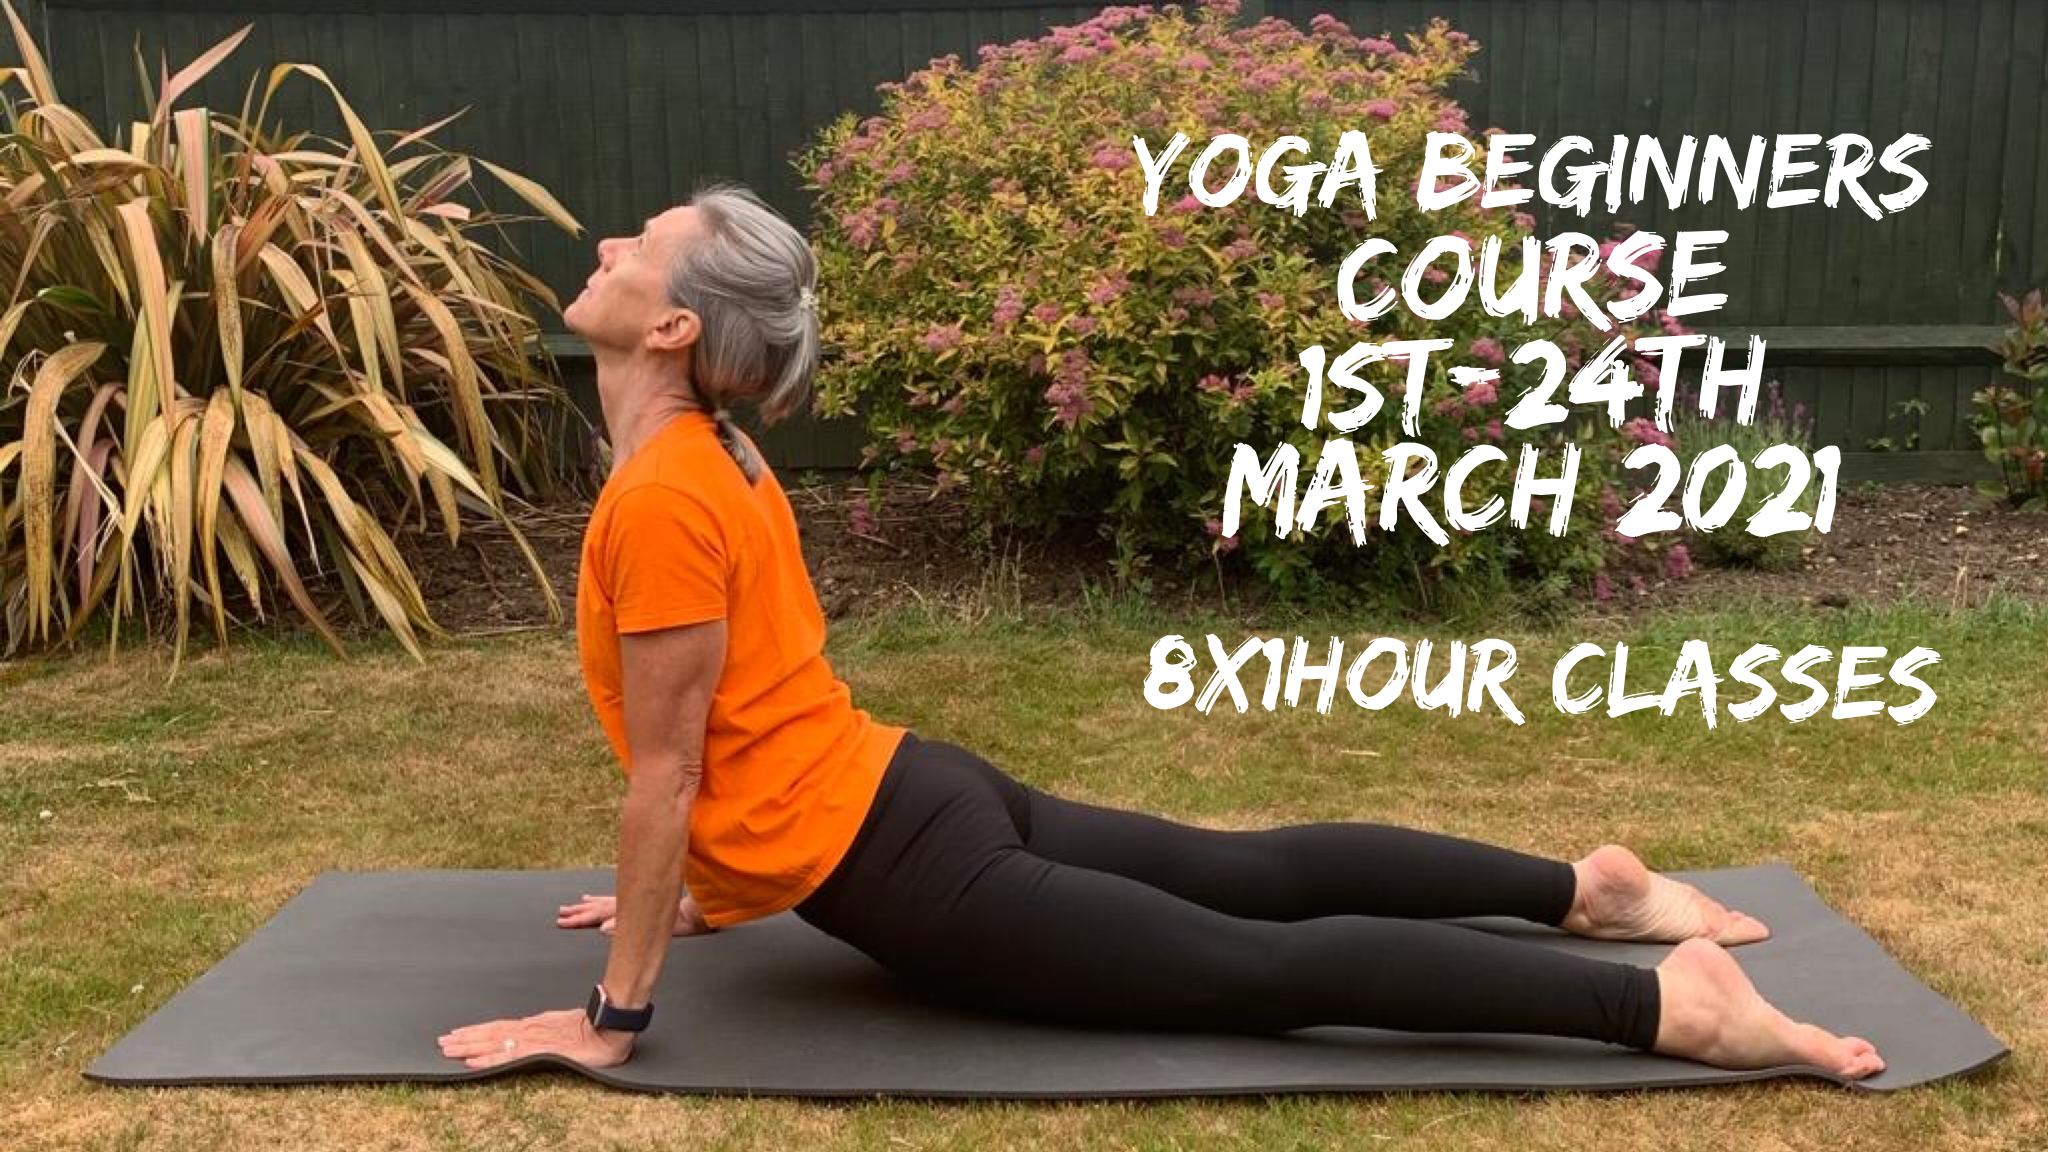 Yoga Beginners Course 1st March 2021